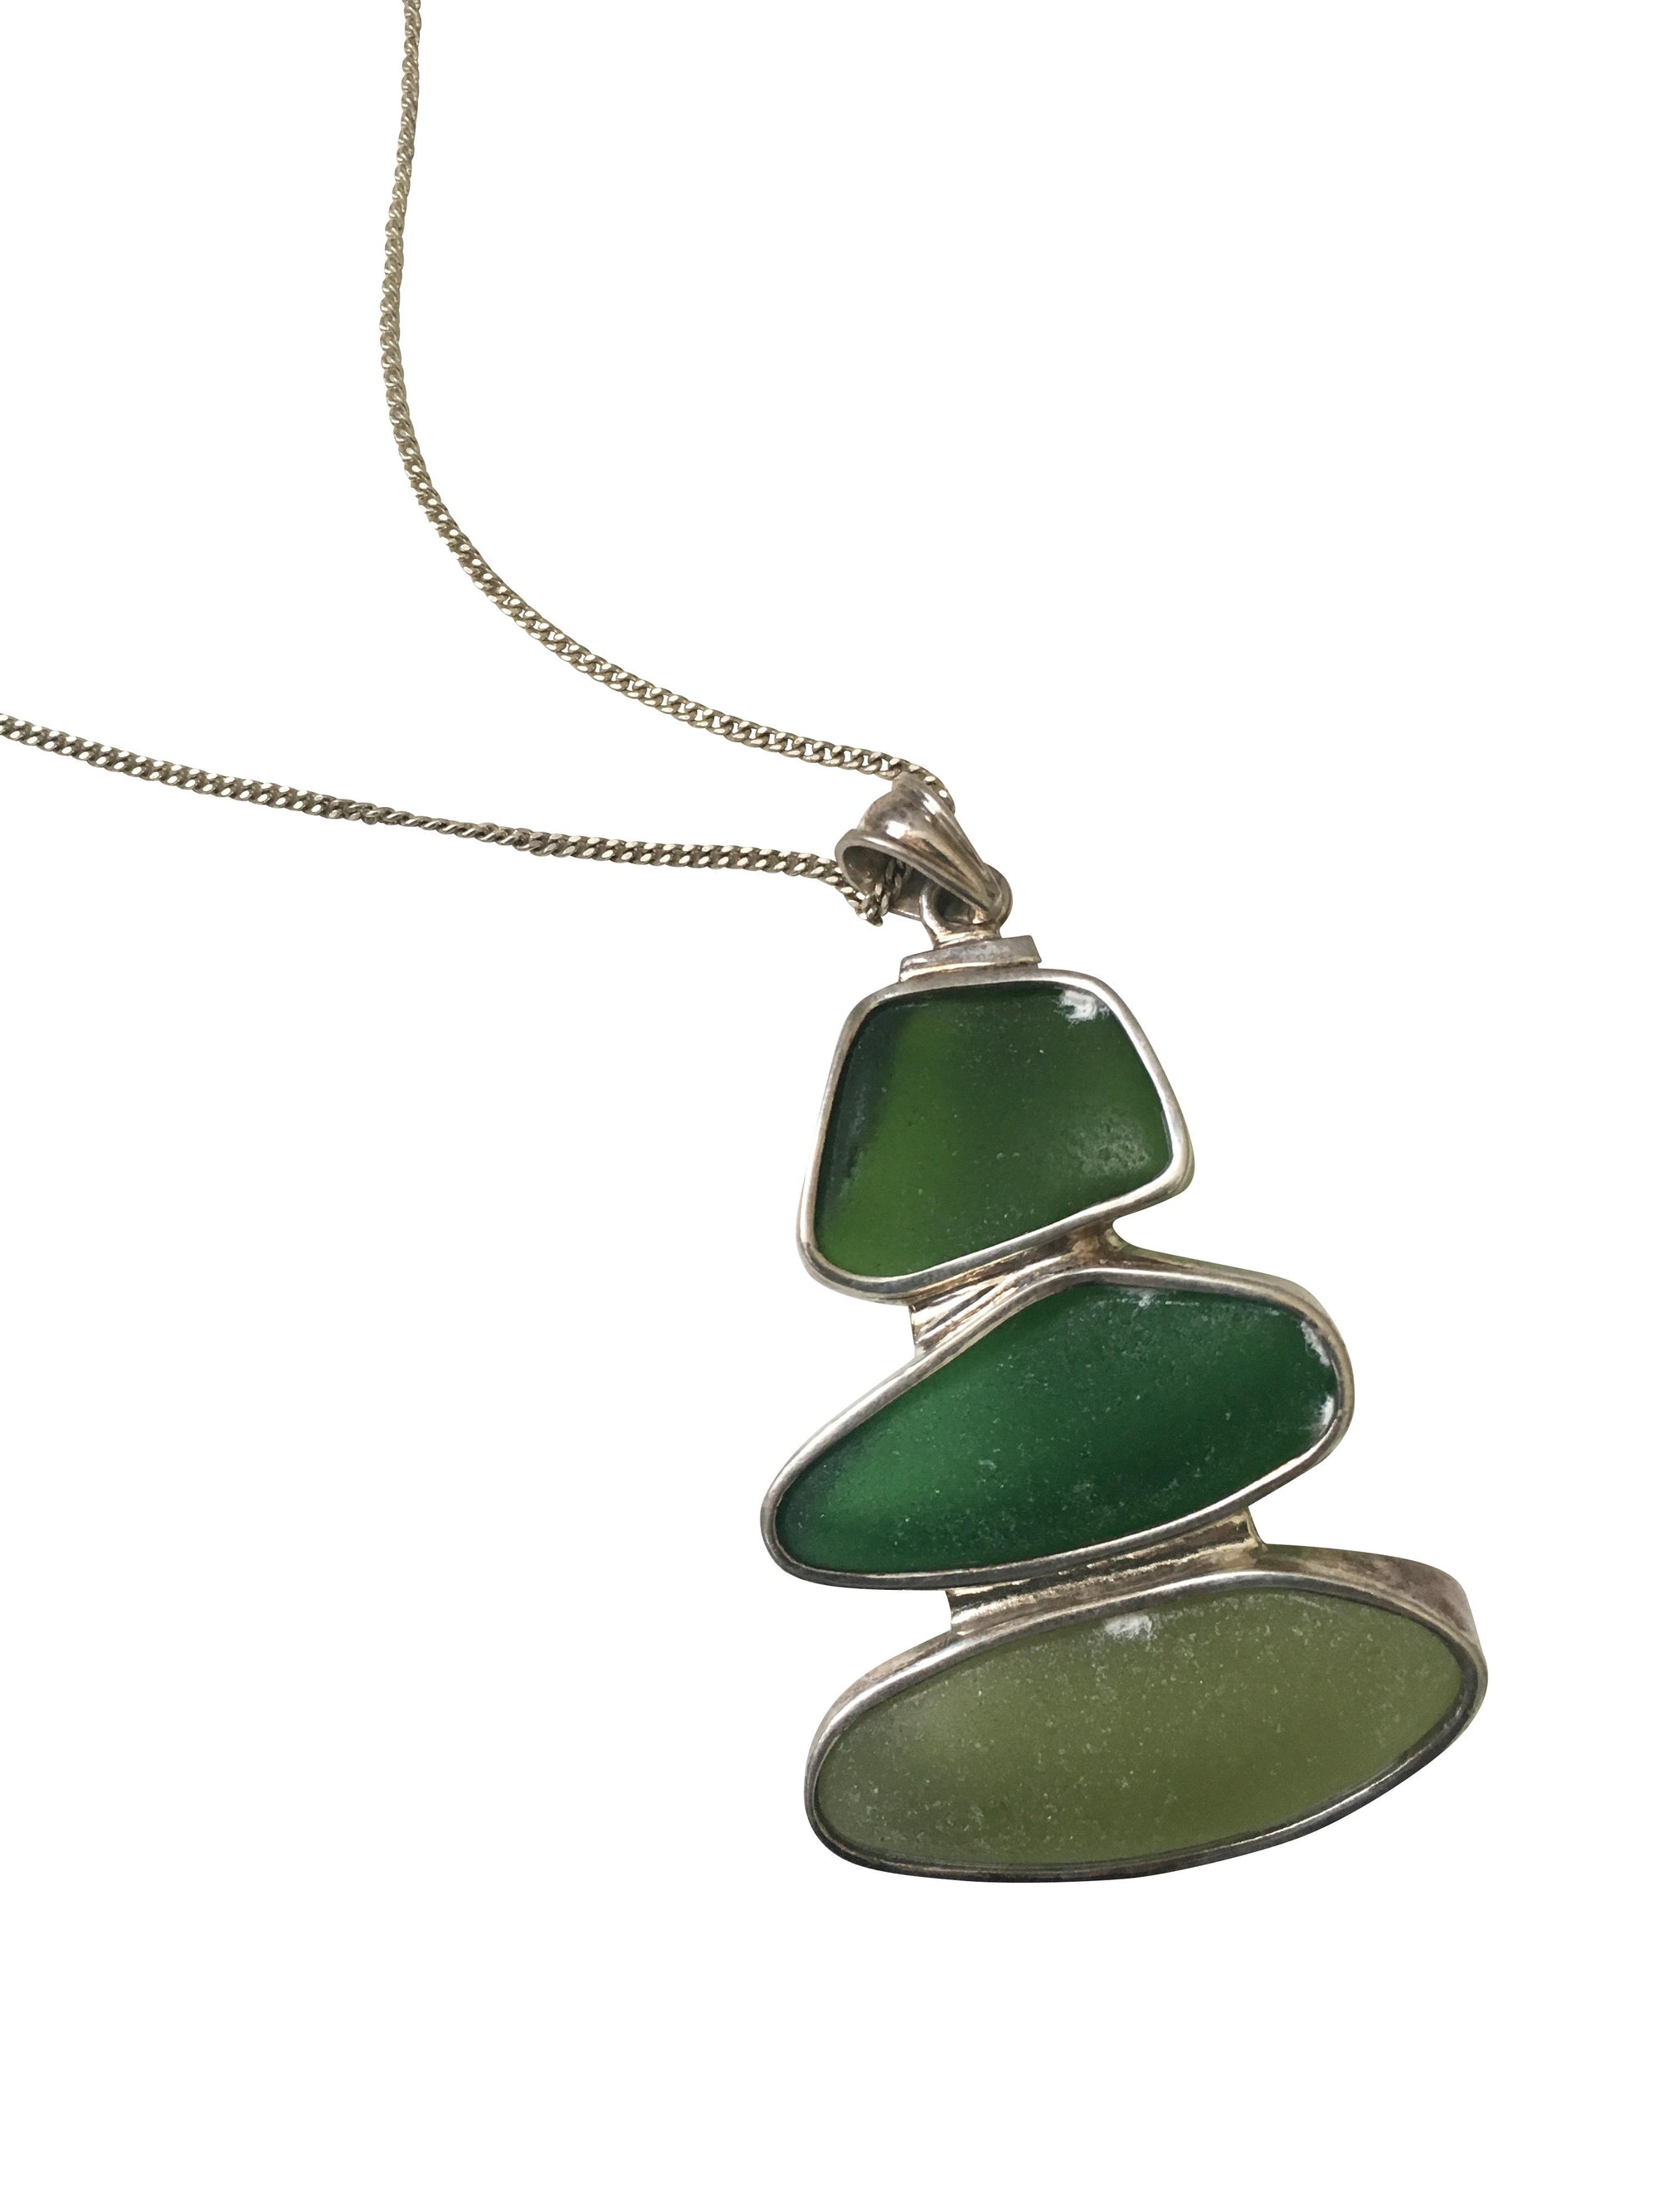 Green Glass Triple Pendant mounted on Sterling Silver